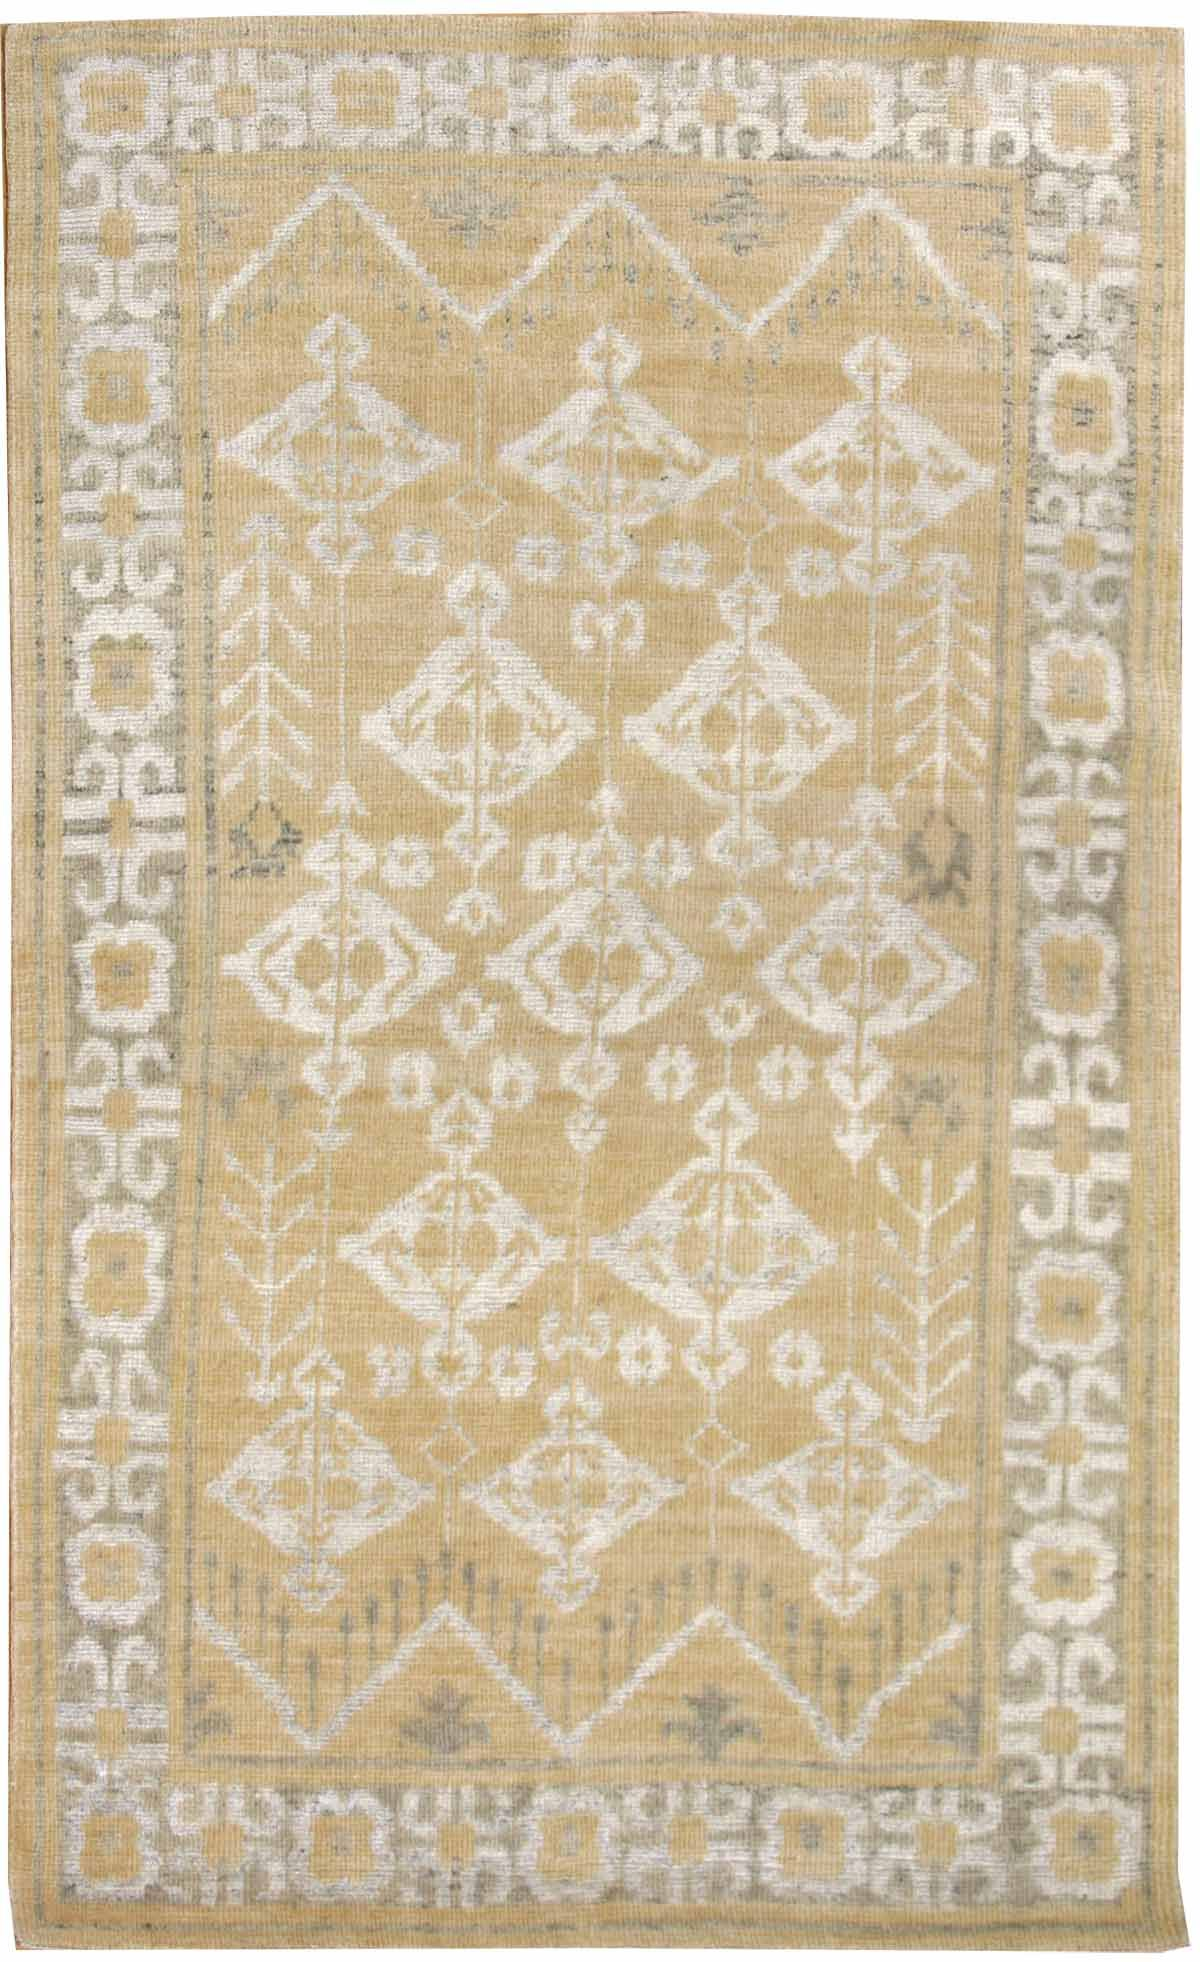 Best Value Modern Rugs Gallery Transitional Design Rug Hand Knotted In India